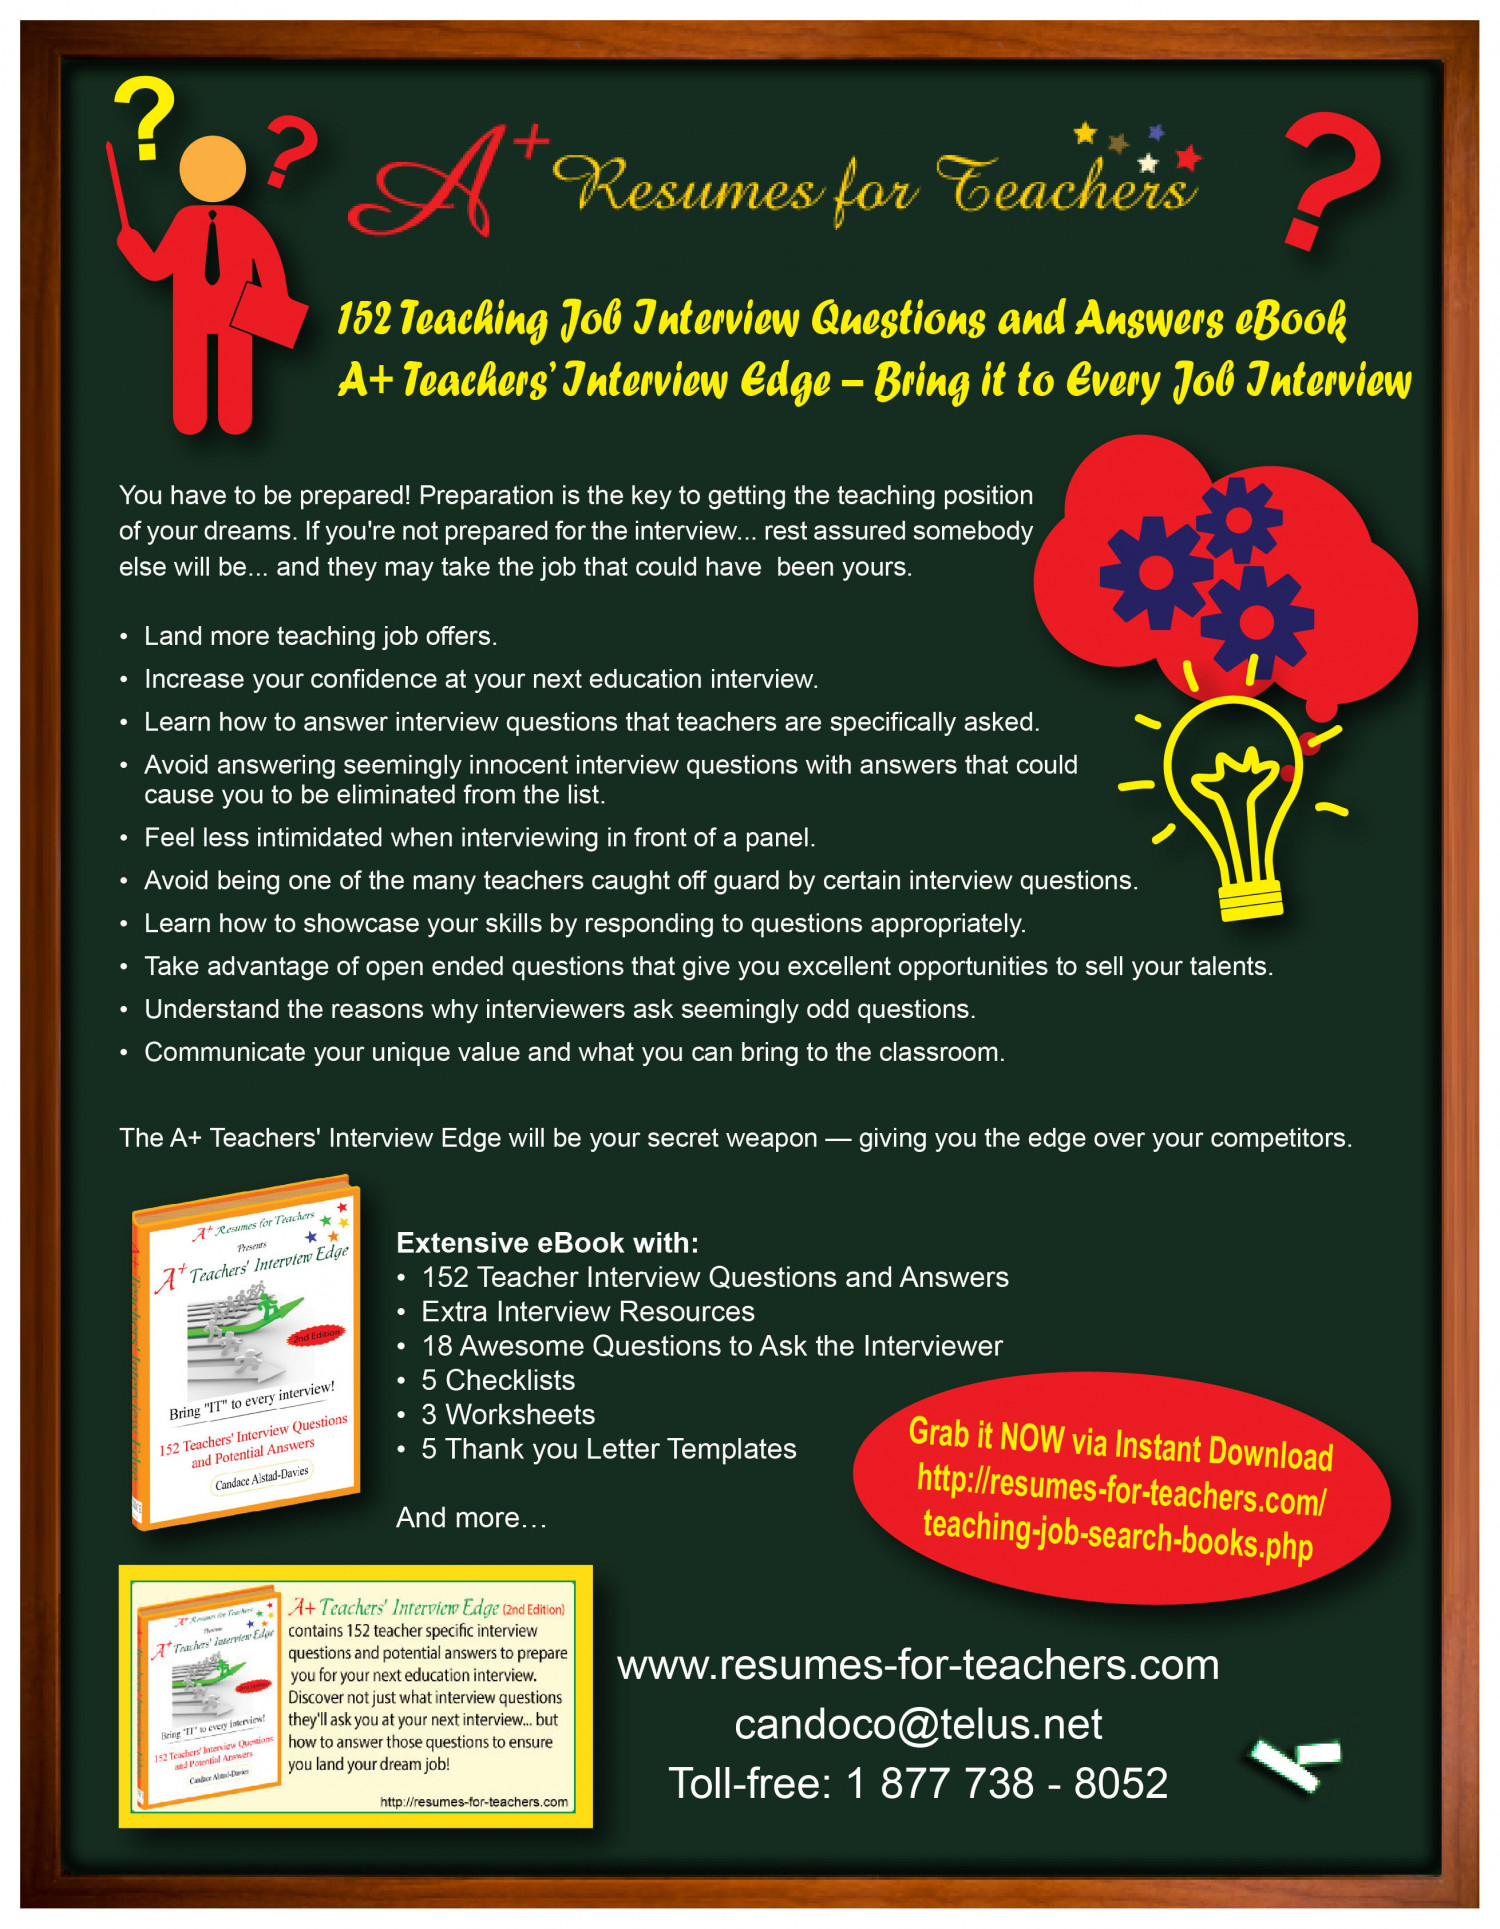 152 teacher job interview questions and answers a teachers 152 teacher job interview questions and answers a teachers interview edge infographic